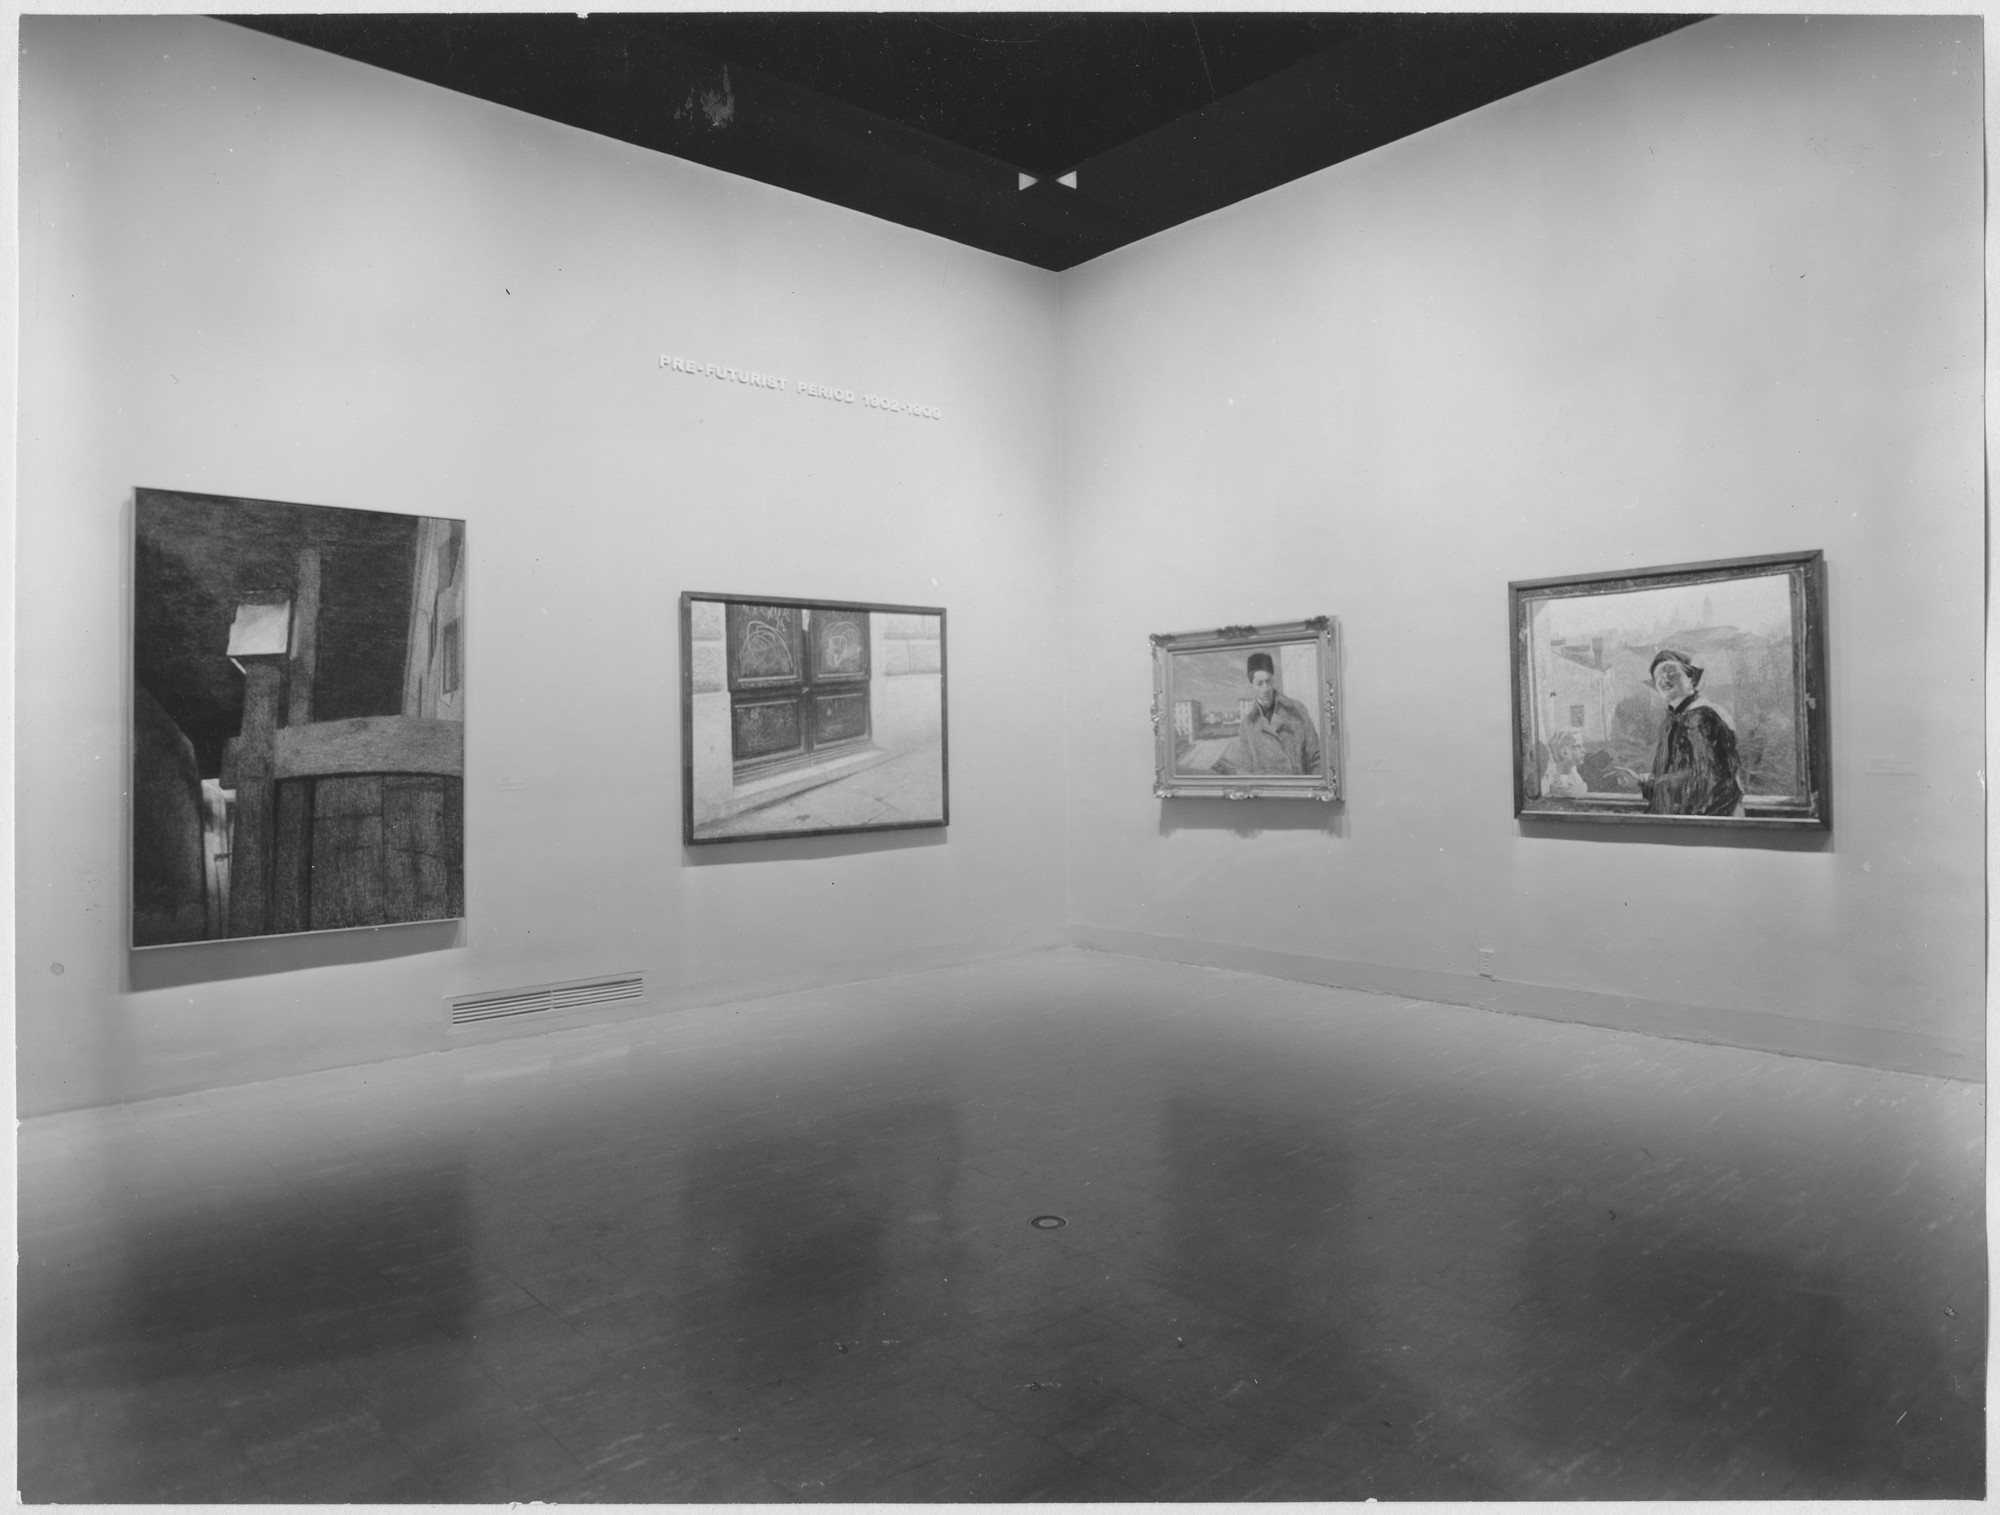 "Installation view of the exhibition, ""Futurism."" May 30, 1961–September 5, 1961. Photographic Archive. The Museum of Modern Art Archives, New York. IN685.1. Photograph by Soichi Sunami."